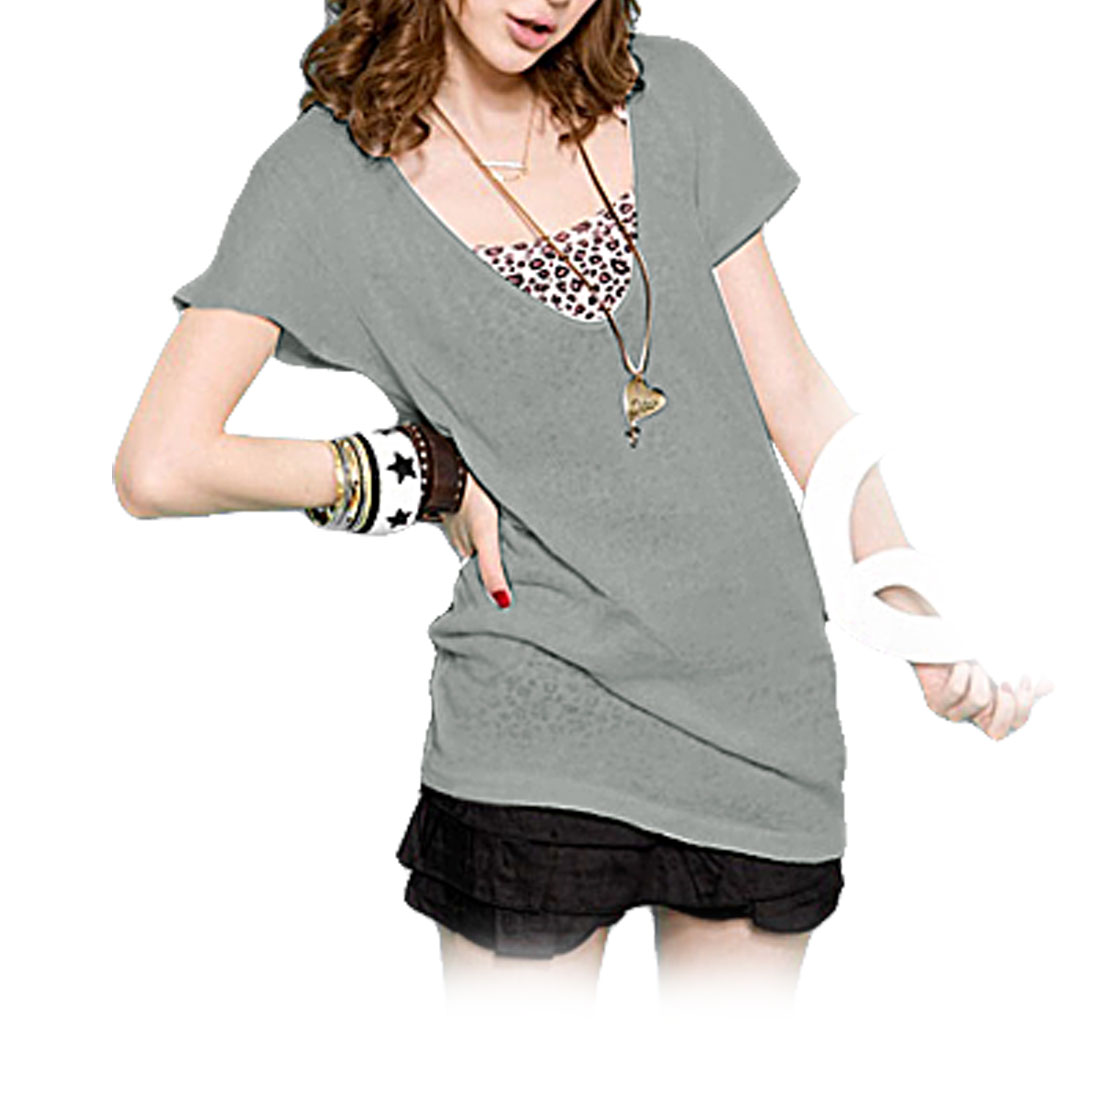 Gray Batwing Sleeved T-Shirt Top XS Size for Ladies